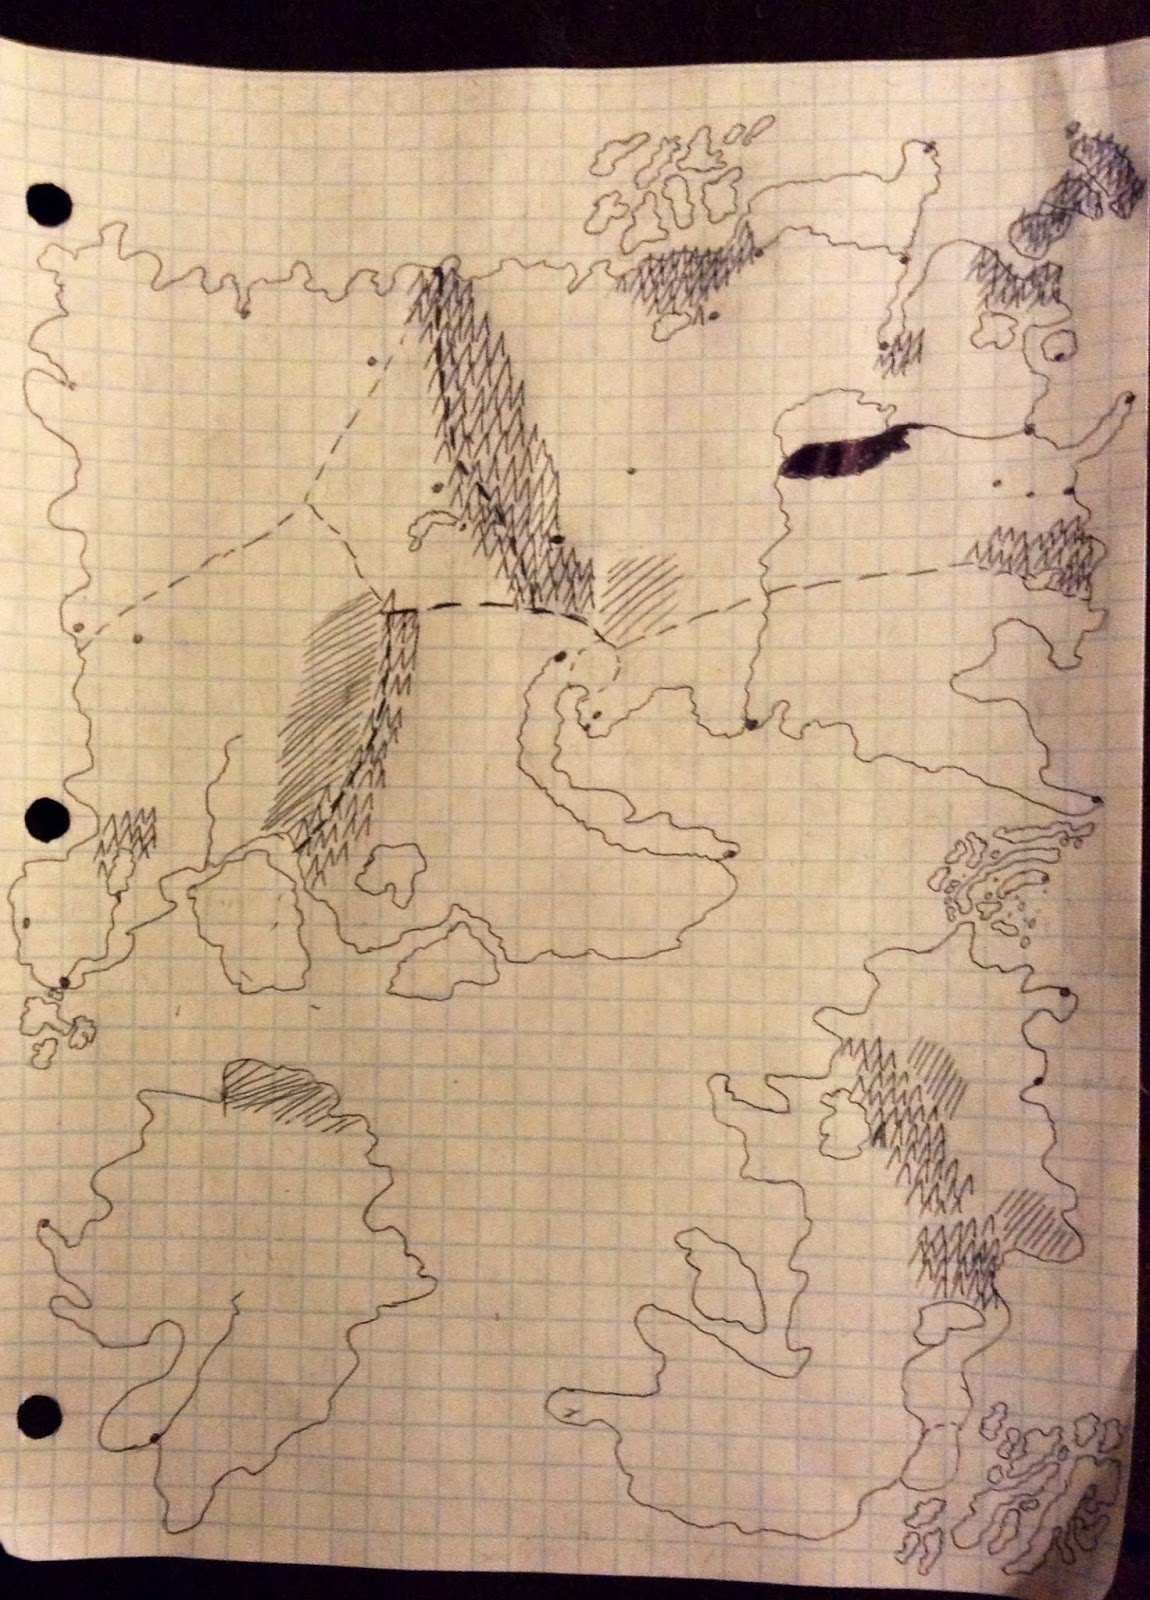 It's not much, but it's my fictional fantasy world.